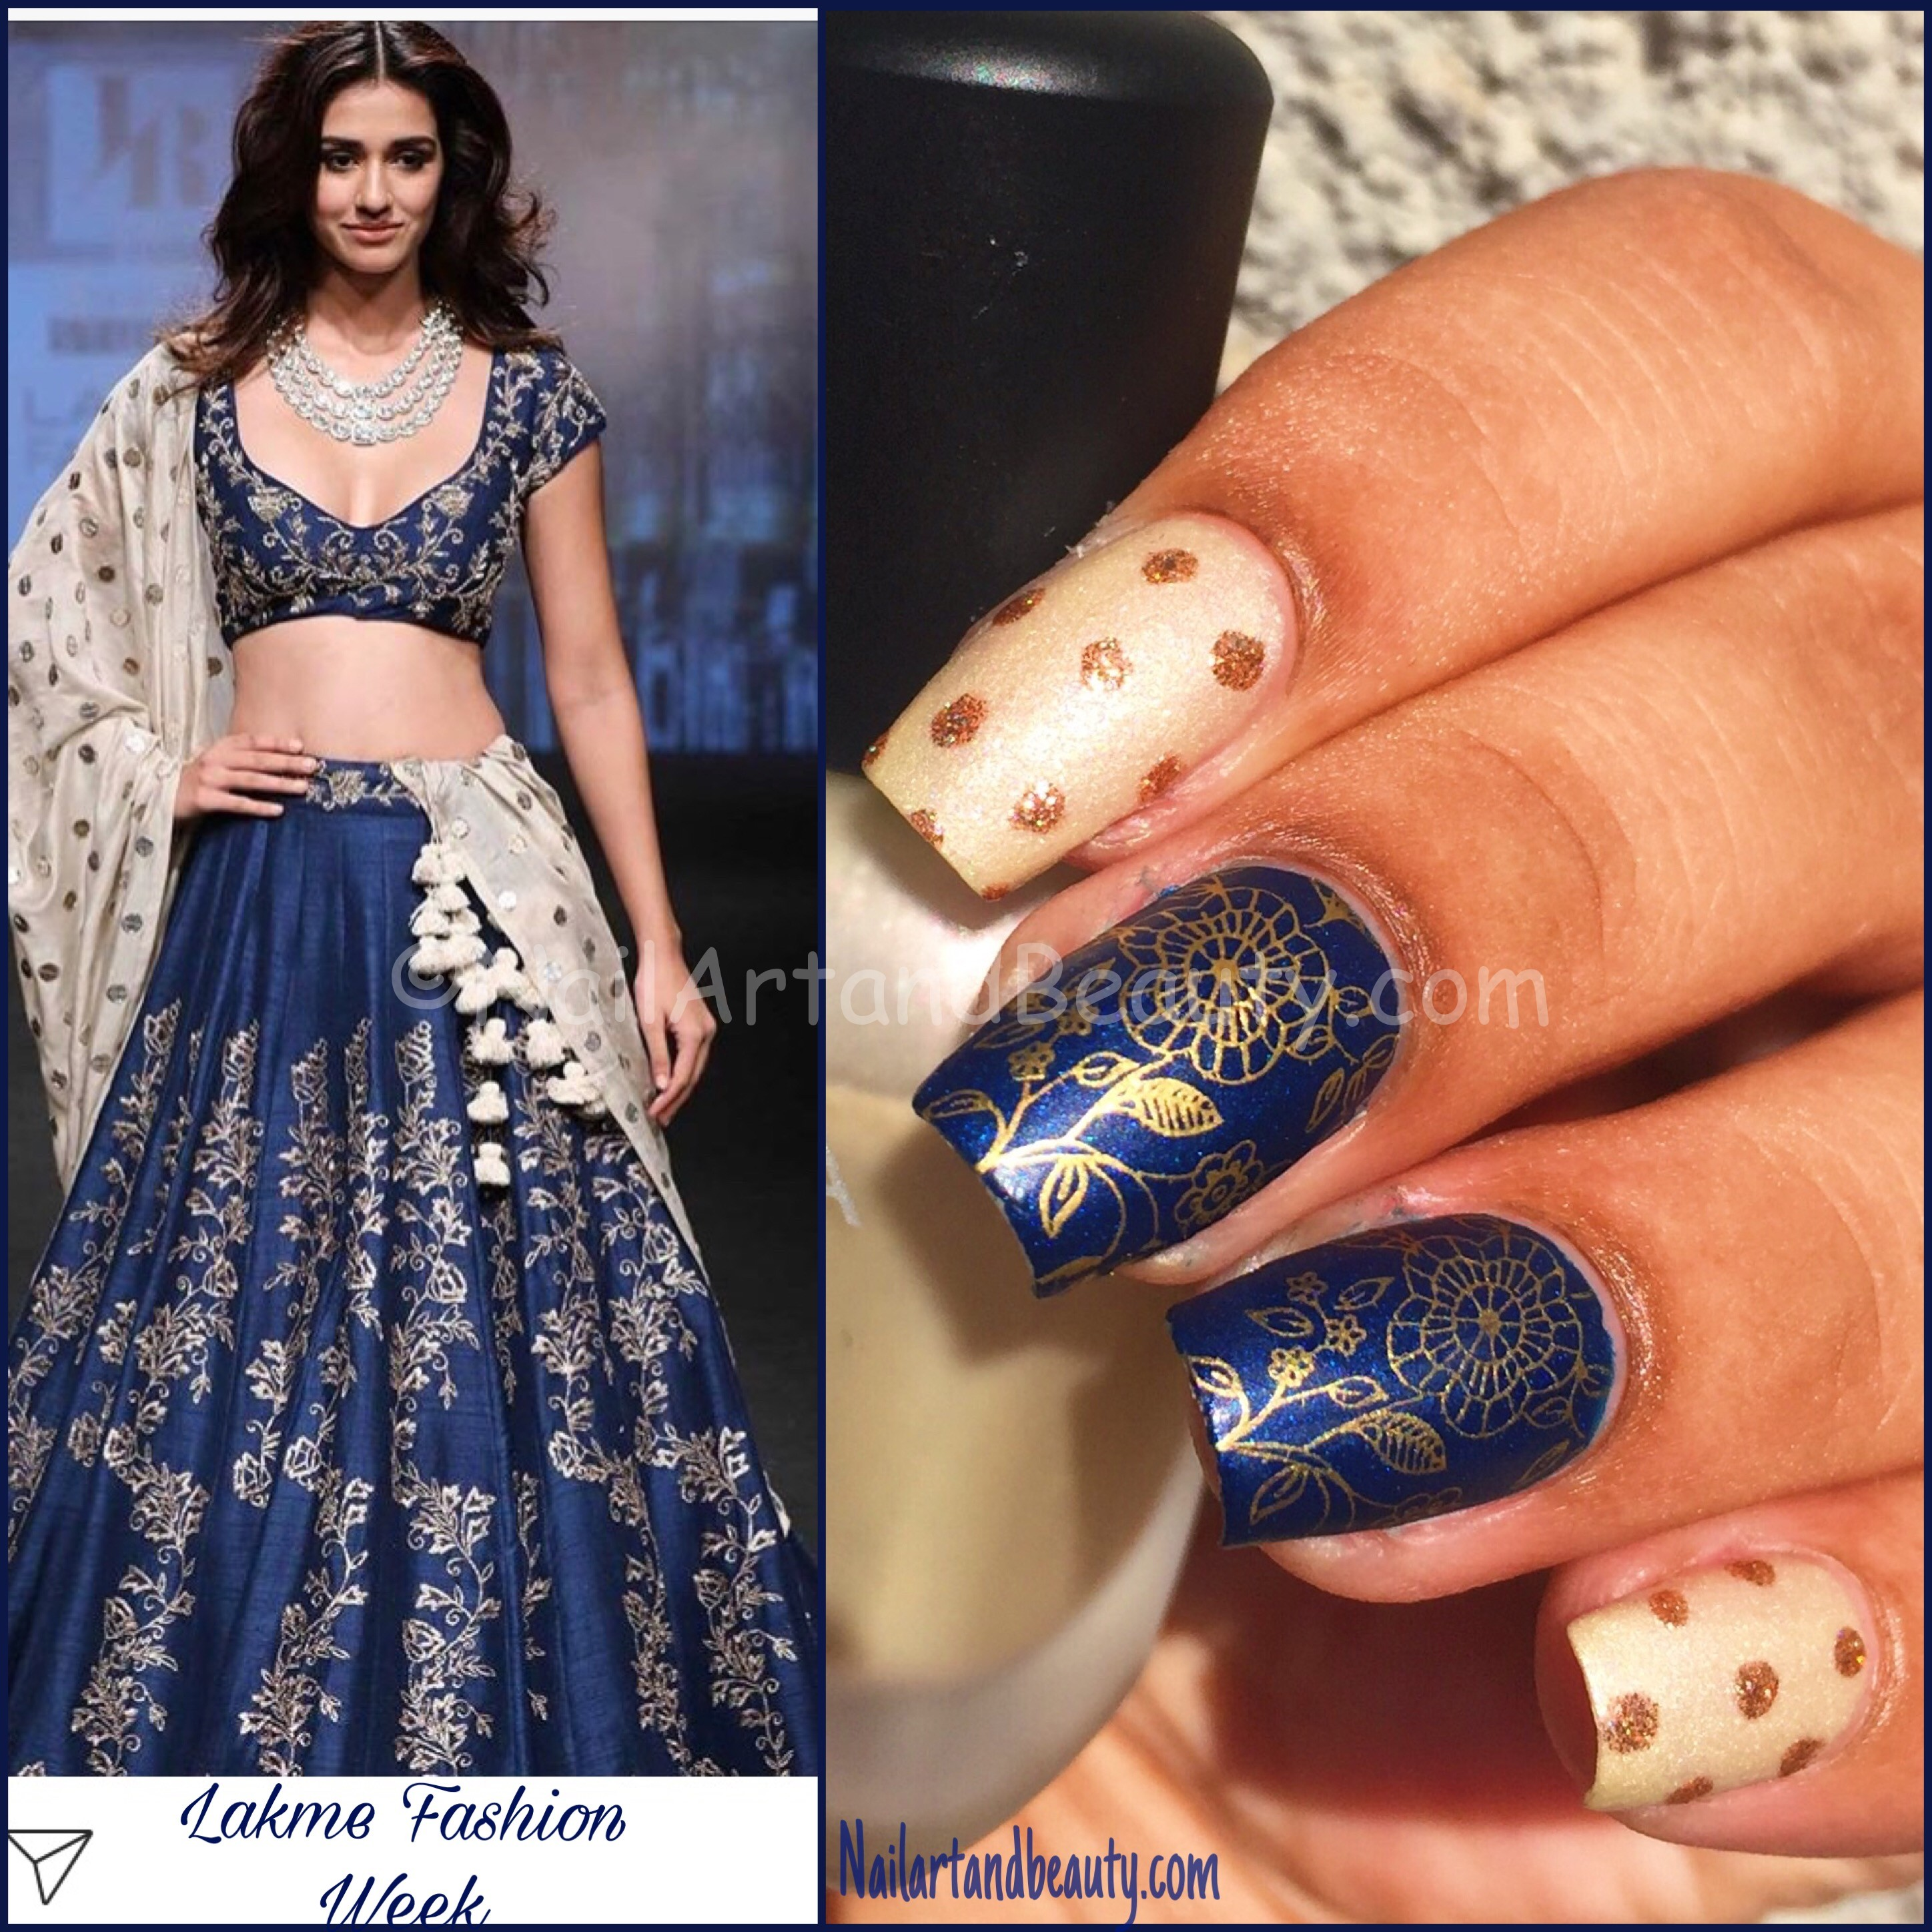 Inspired Nails from Lakme Fashion Week